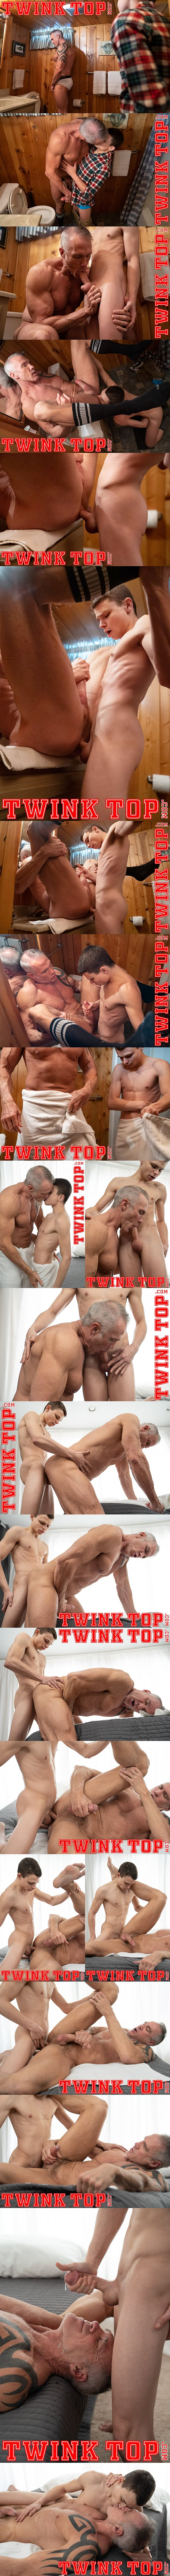 Twinktop - twink boy Austin Young barebacks tall macho daddy Dallas Steele in an older younger scene in sports camp before he cums on Dallas' face in Sports Camp Newbie 02